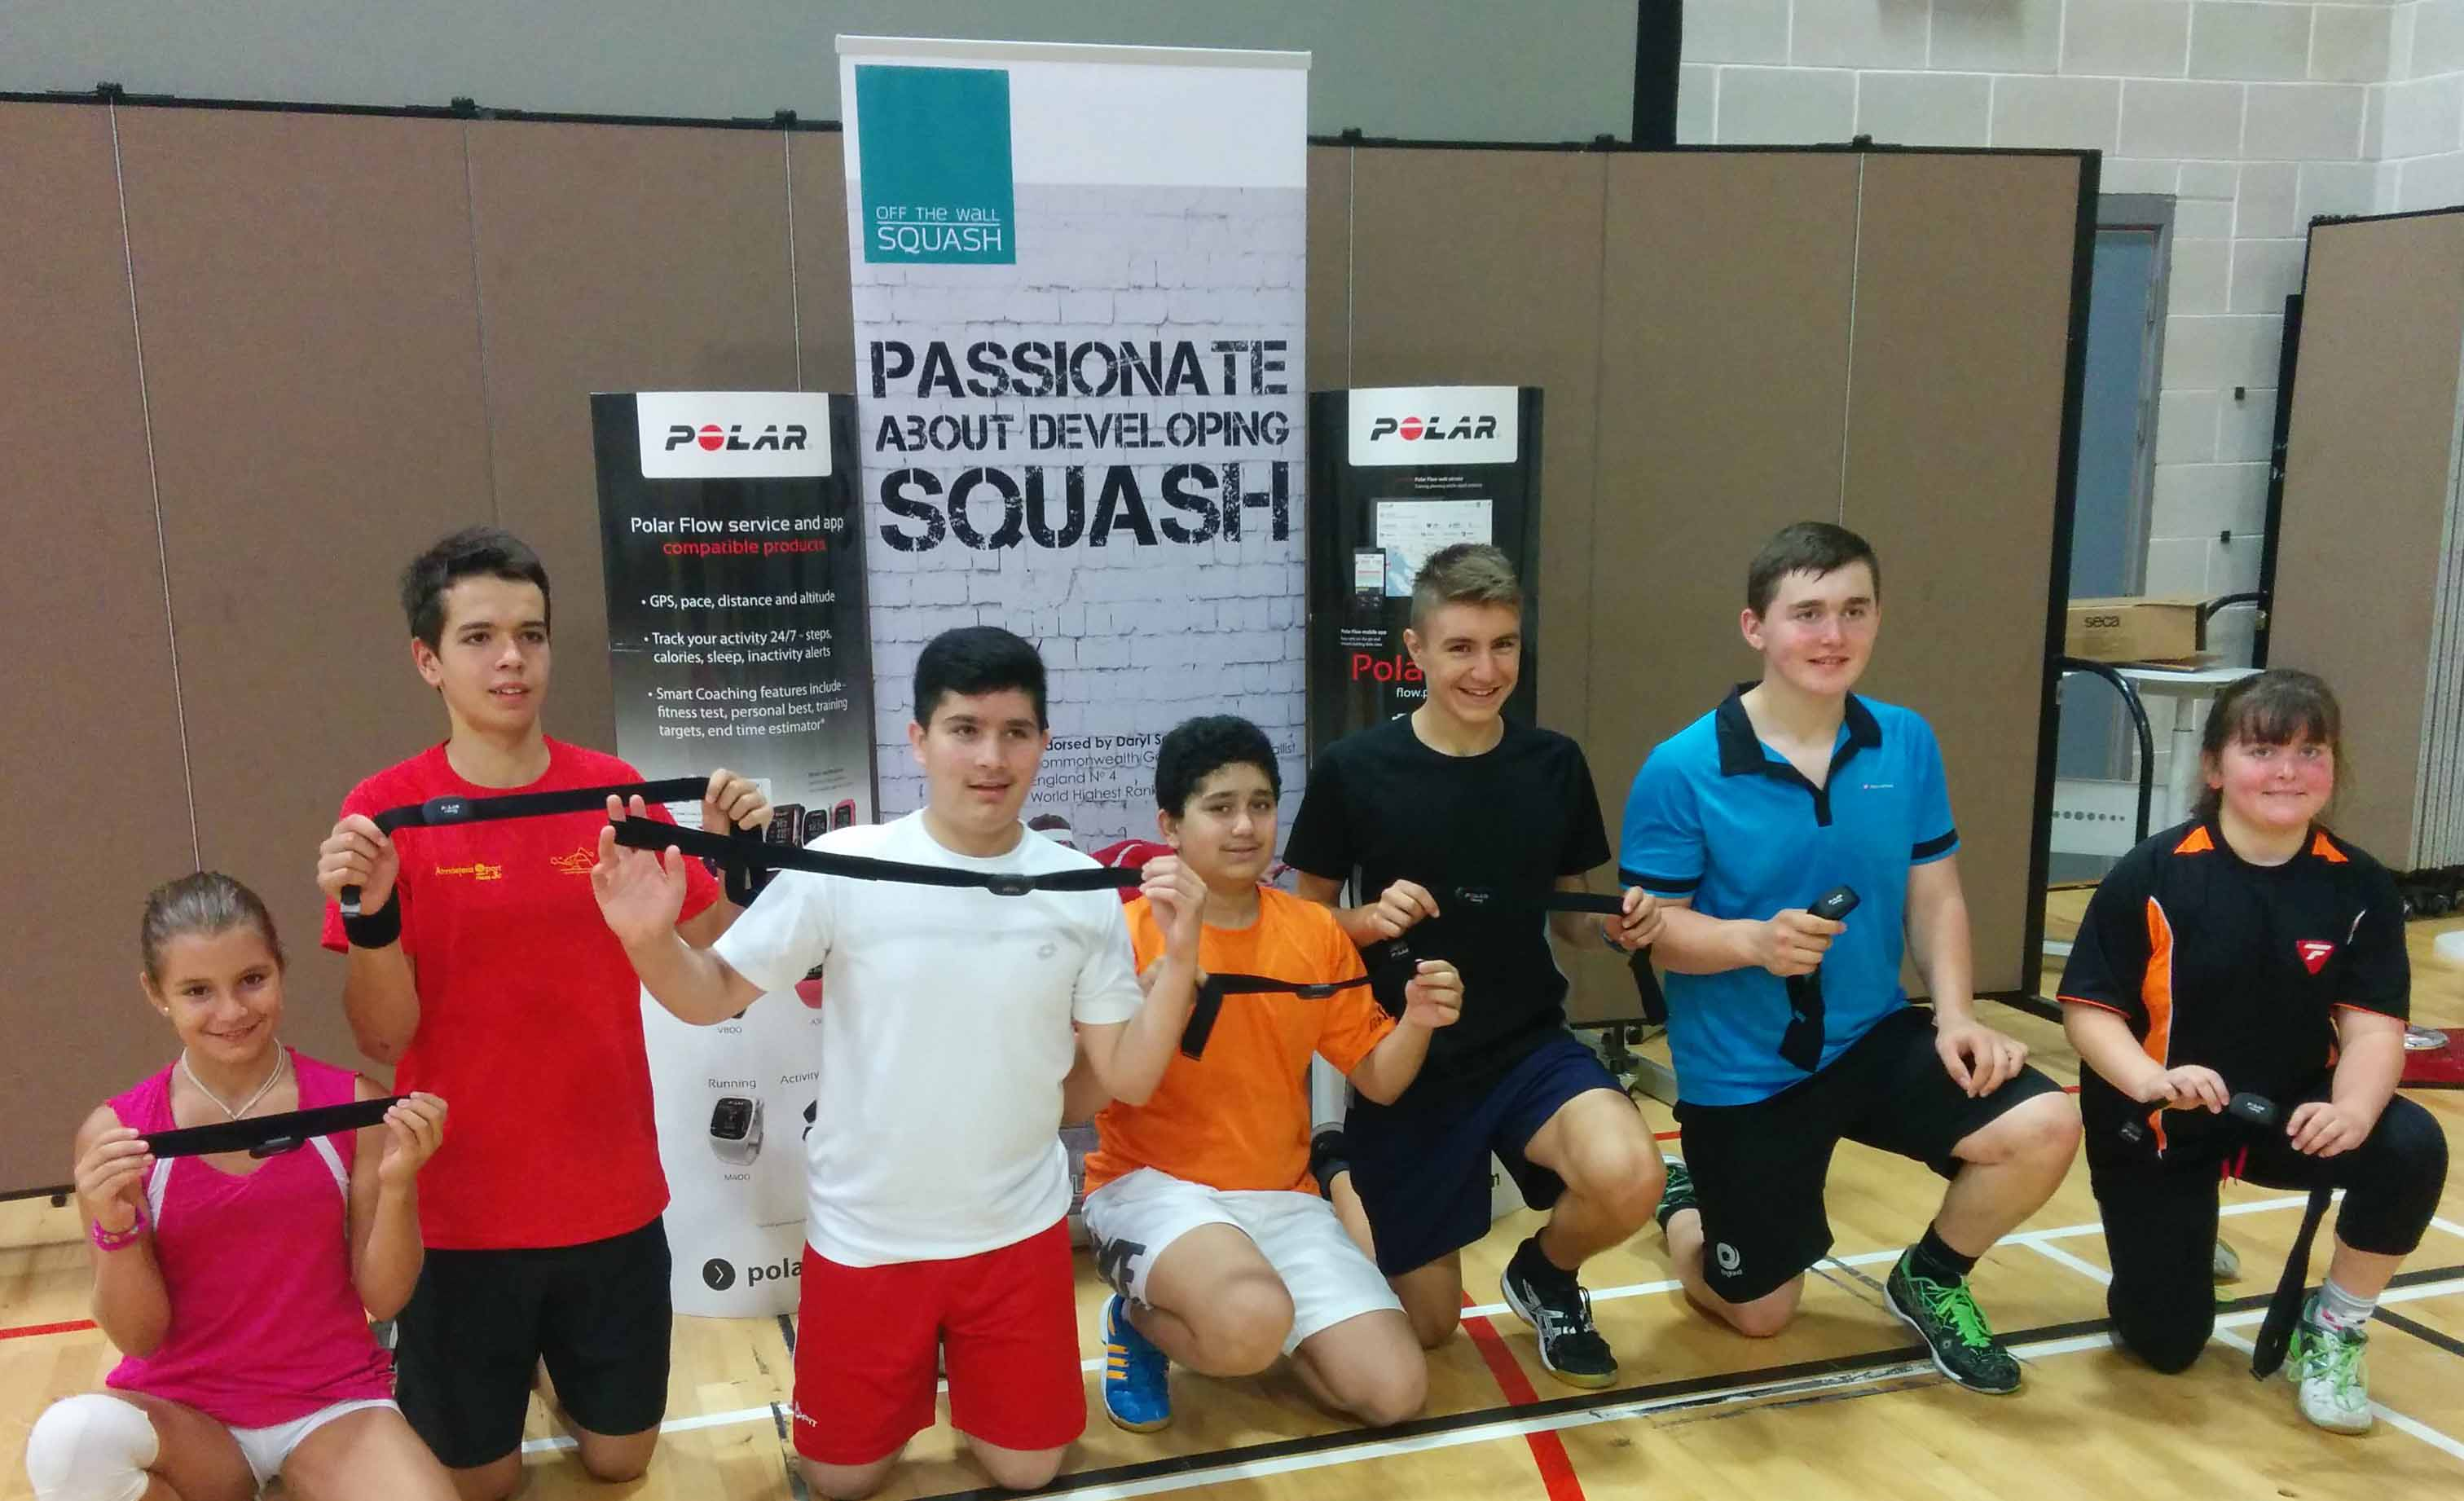 Off The Wall Squash and Polar Announce Partnership